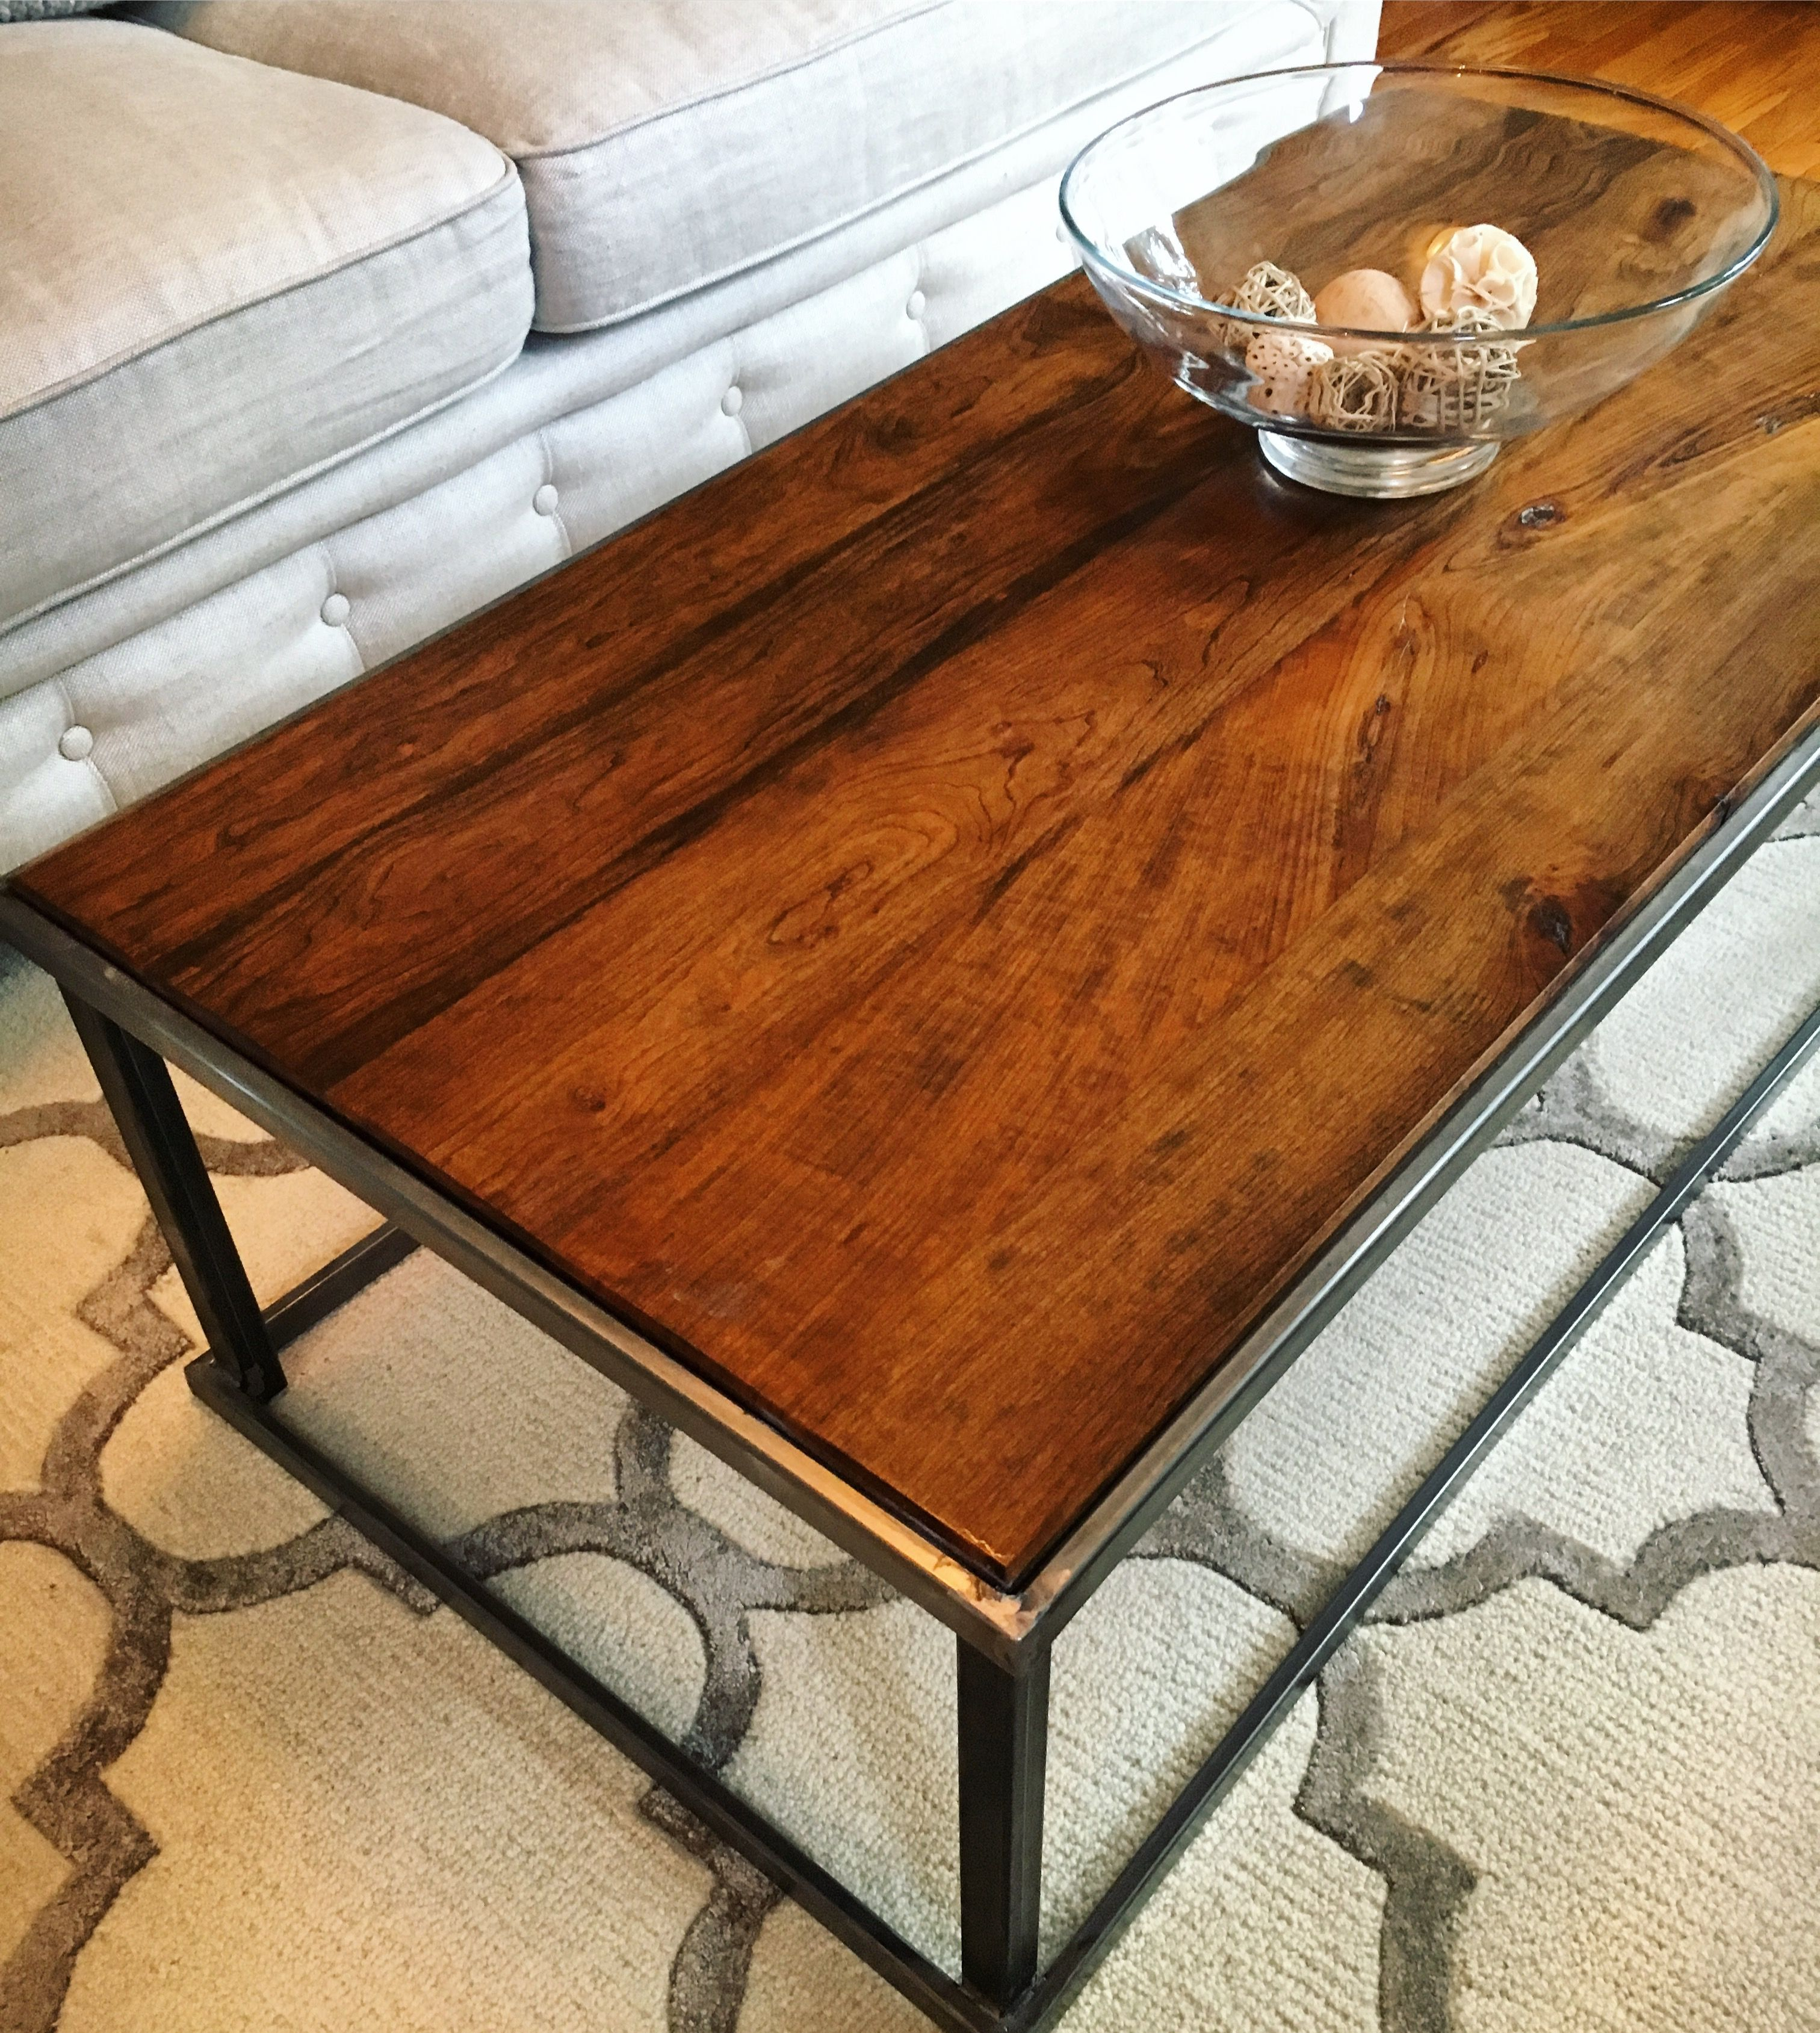 Solid Stainless Steel Coffee Table: Handmade Solid Cherry And Steel Coffee Table By Rebel